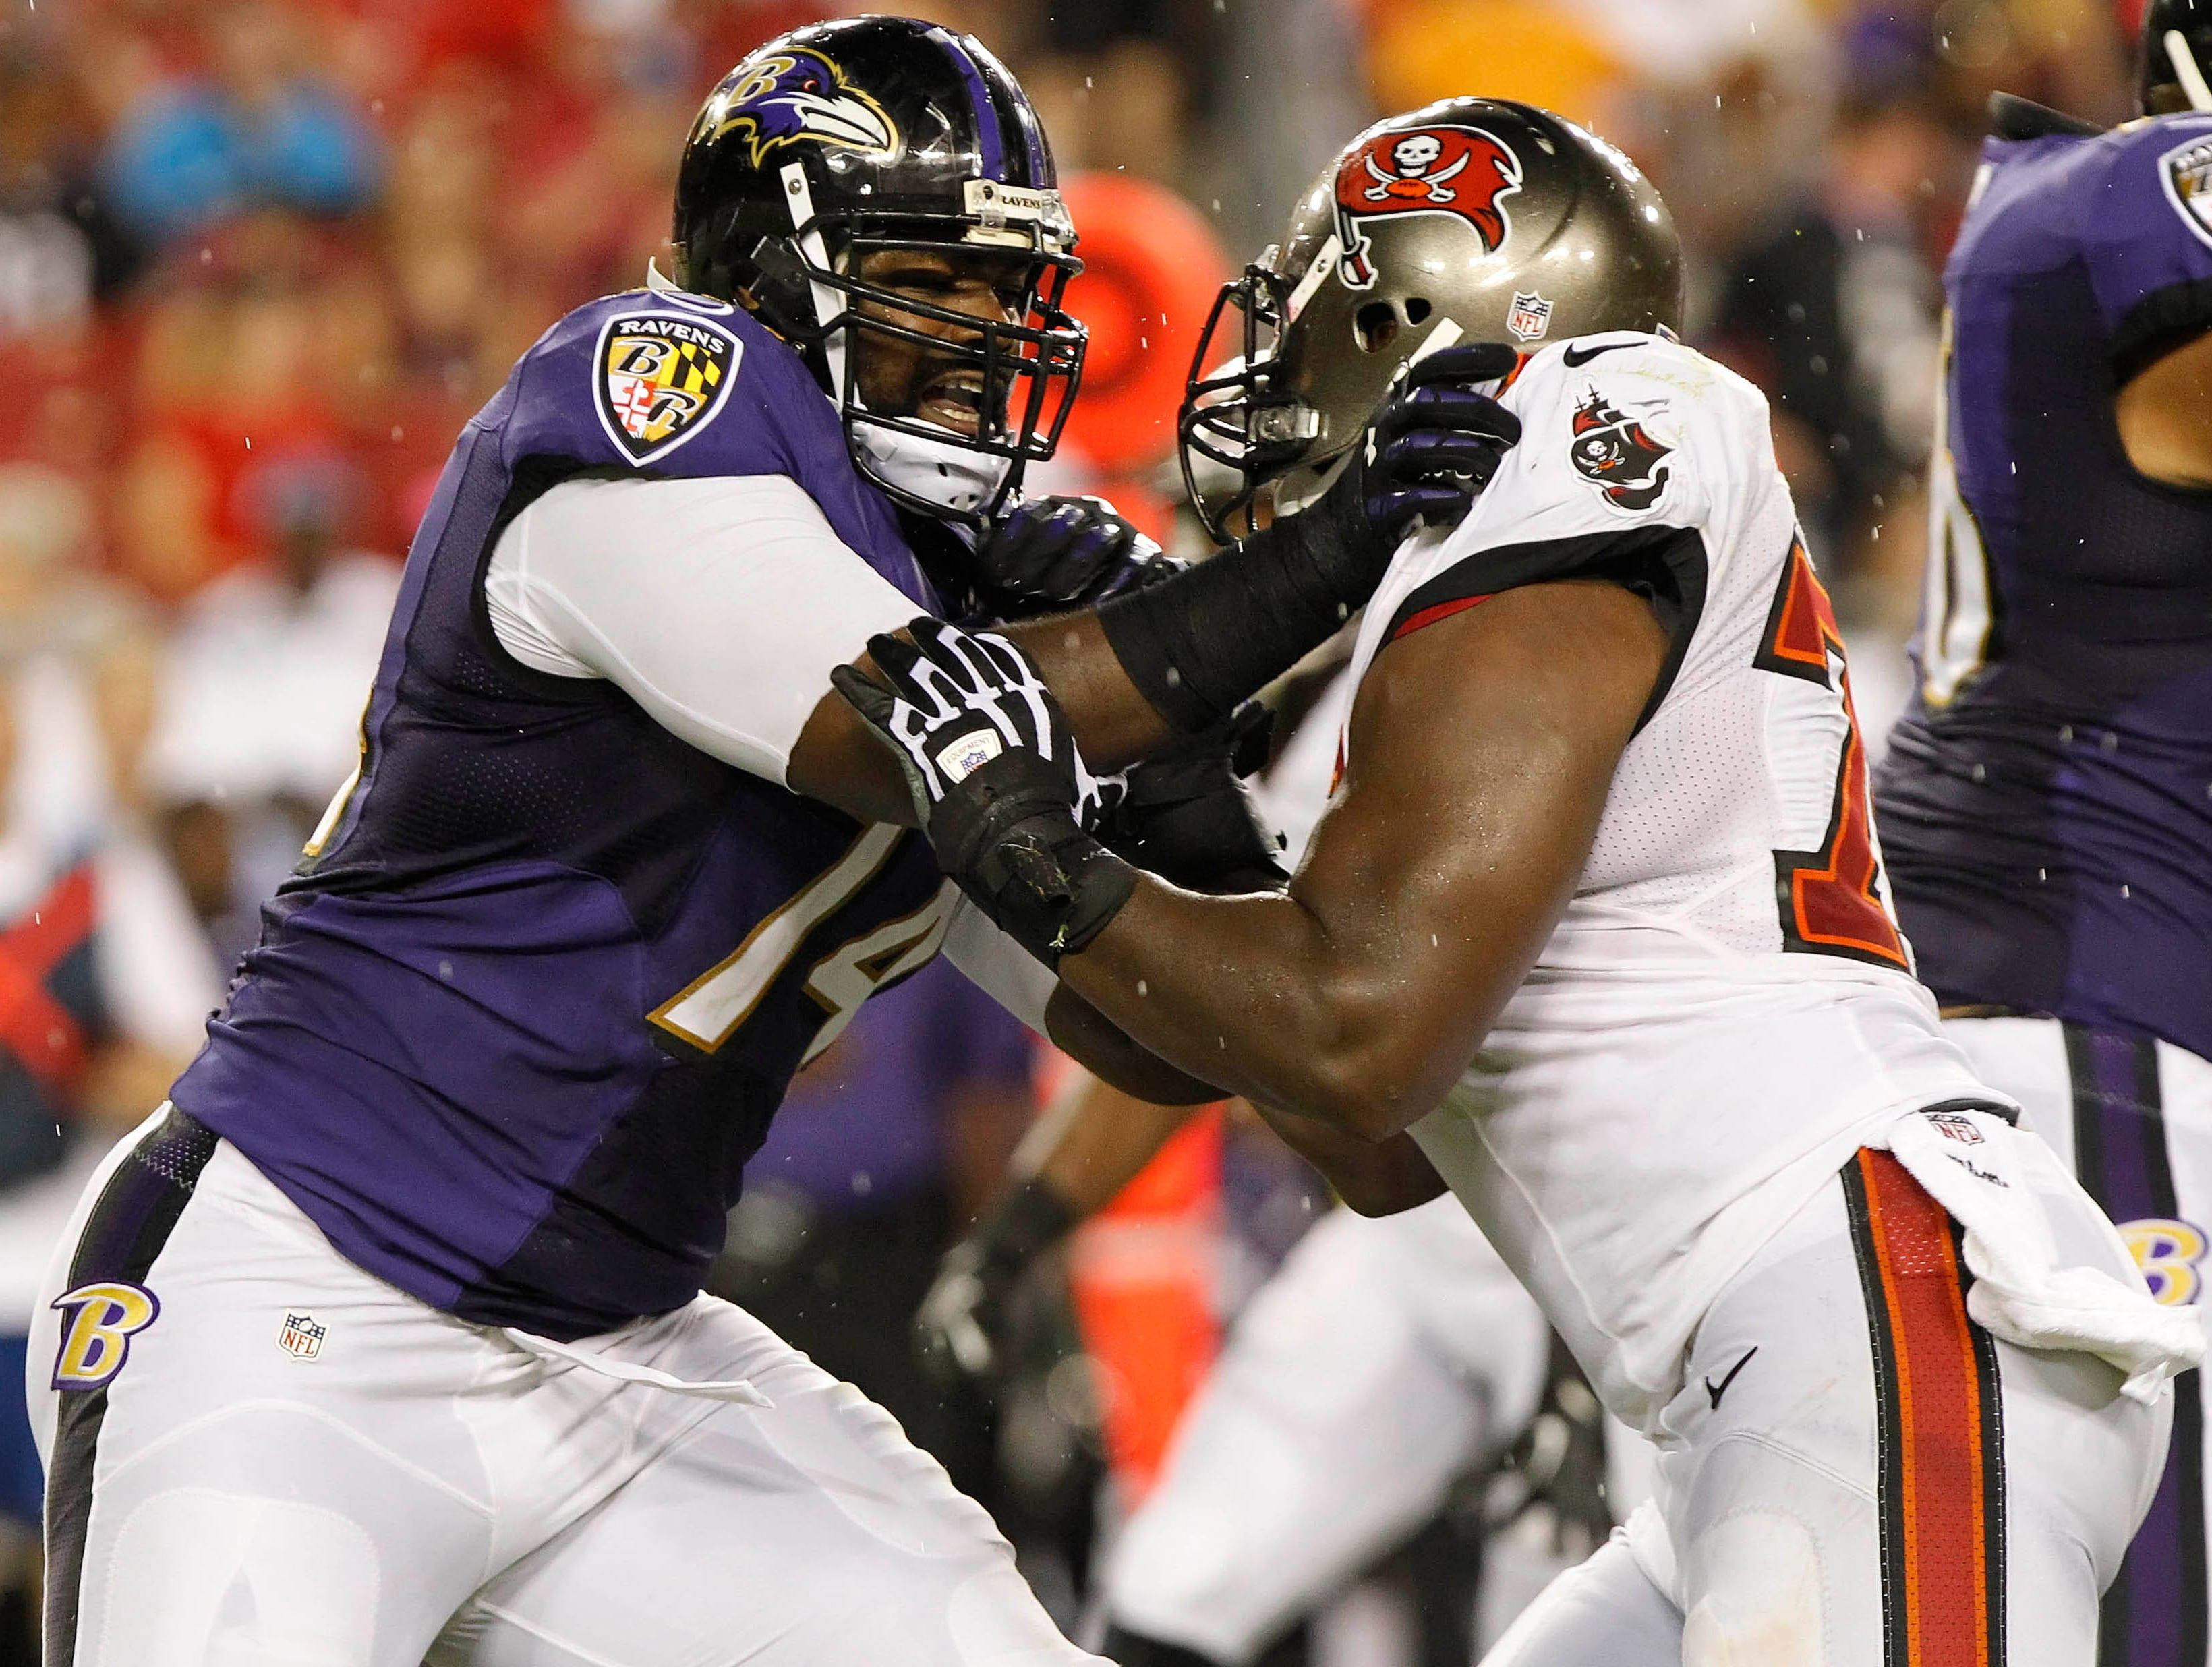 Baltimore Ravens tackle Michael Oher (74) blocks Tampa Bay Buccaneers defensive end Lazarius Levingston (78) during the second quarter at Raymond James Stadium.